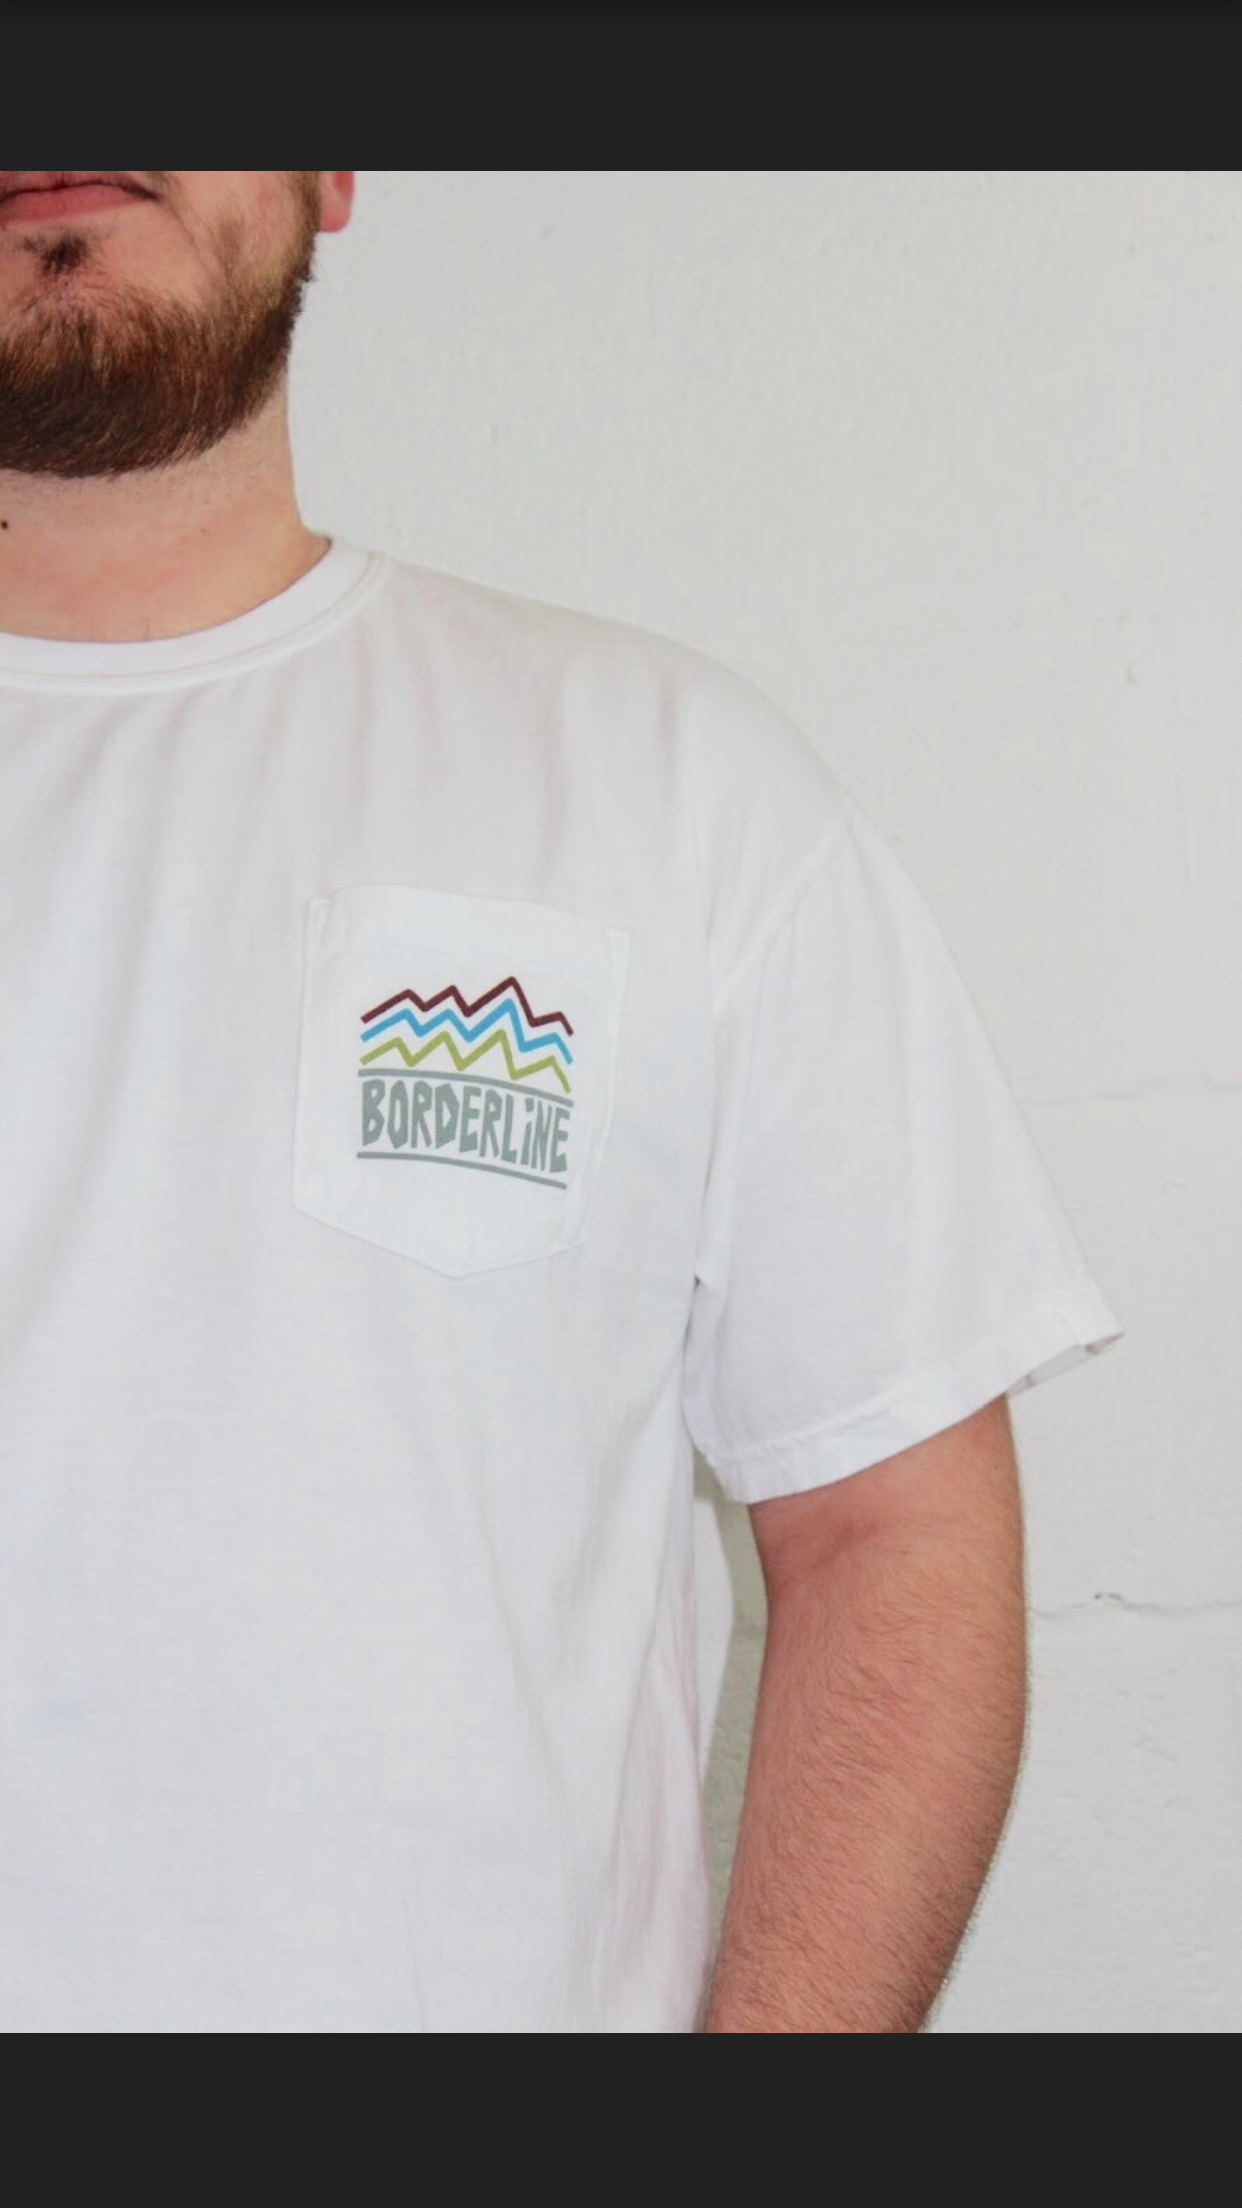 Borderline Founders T-Shirt